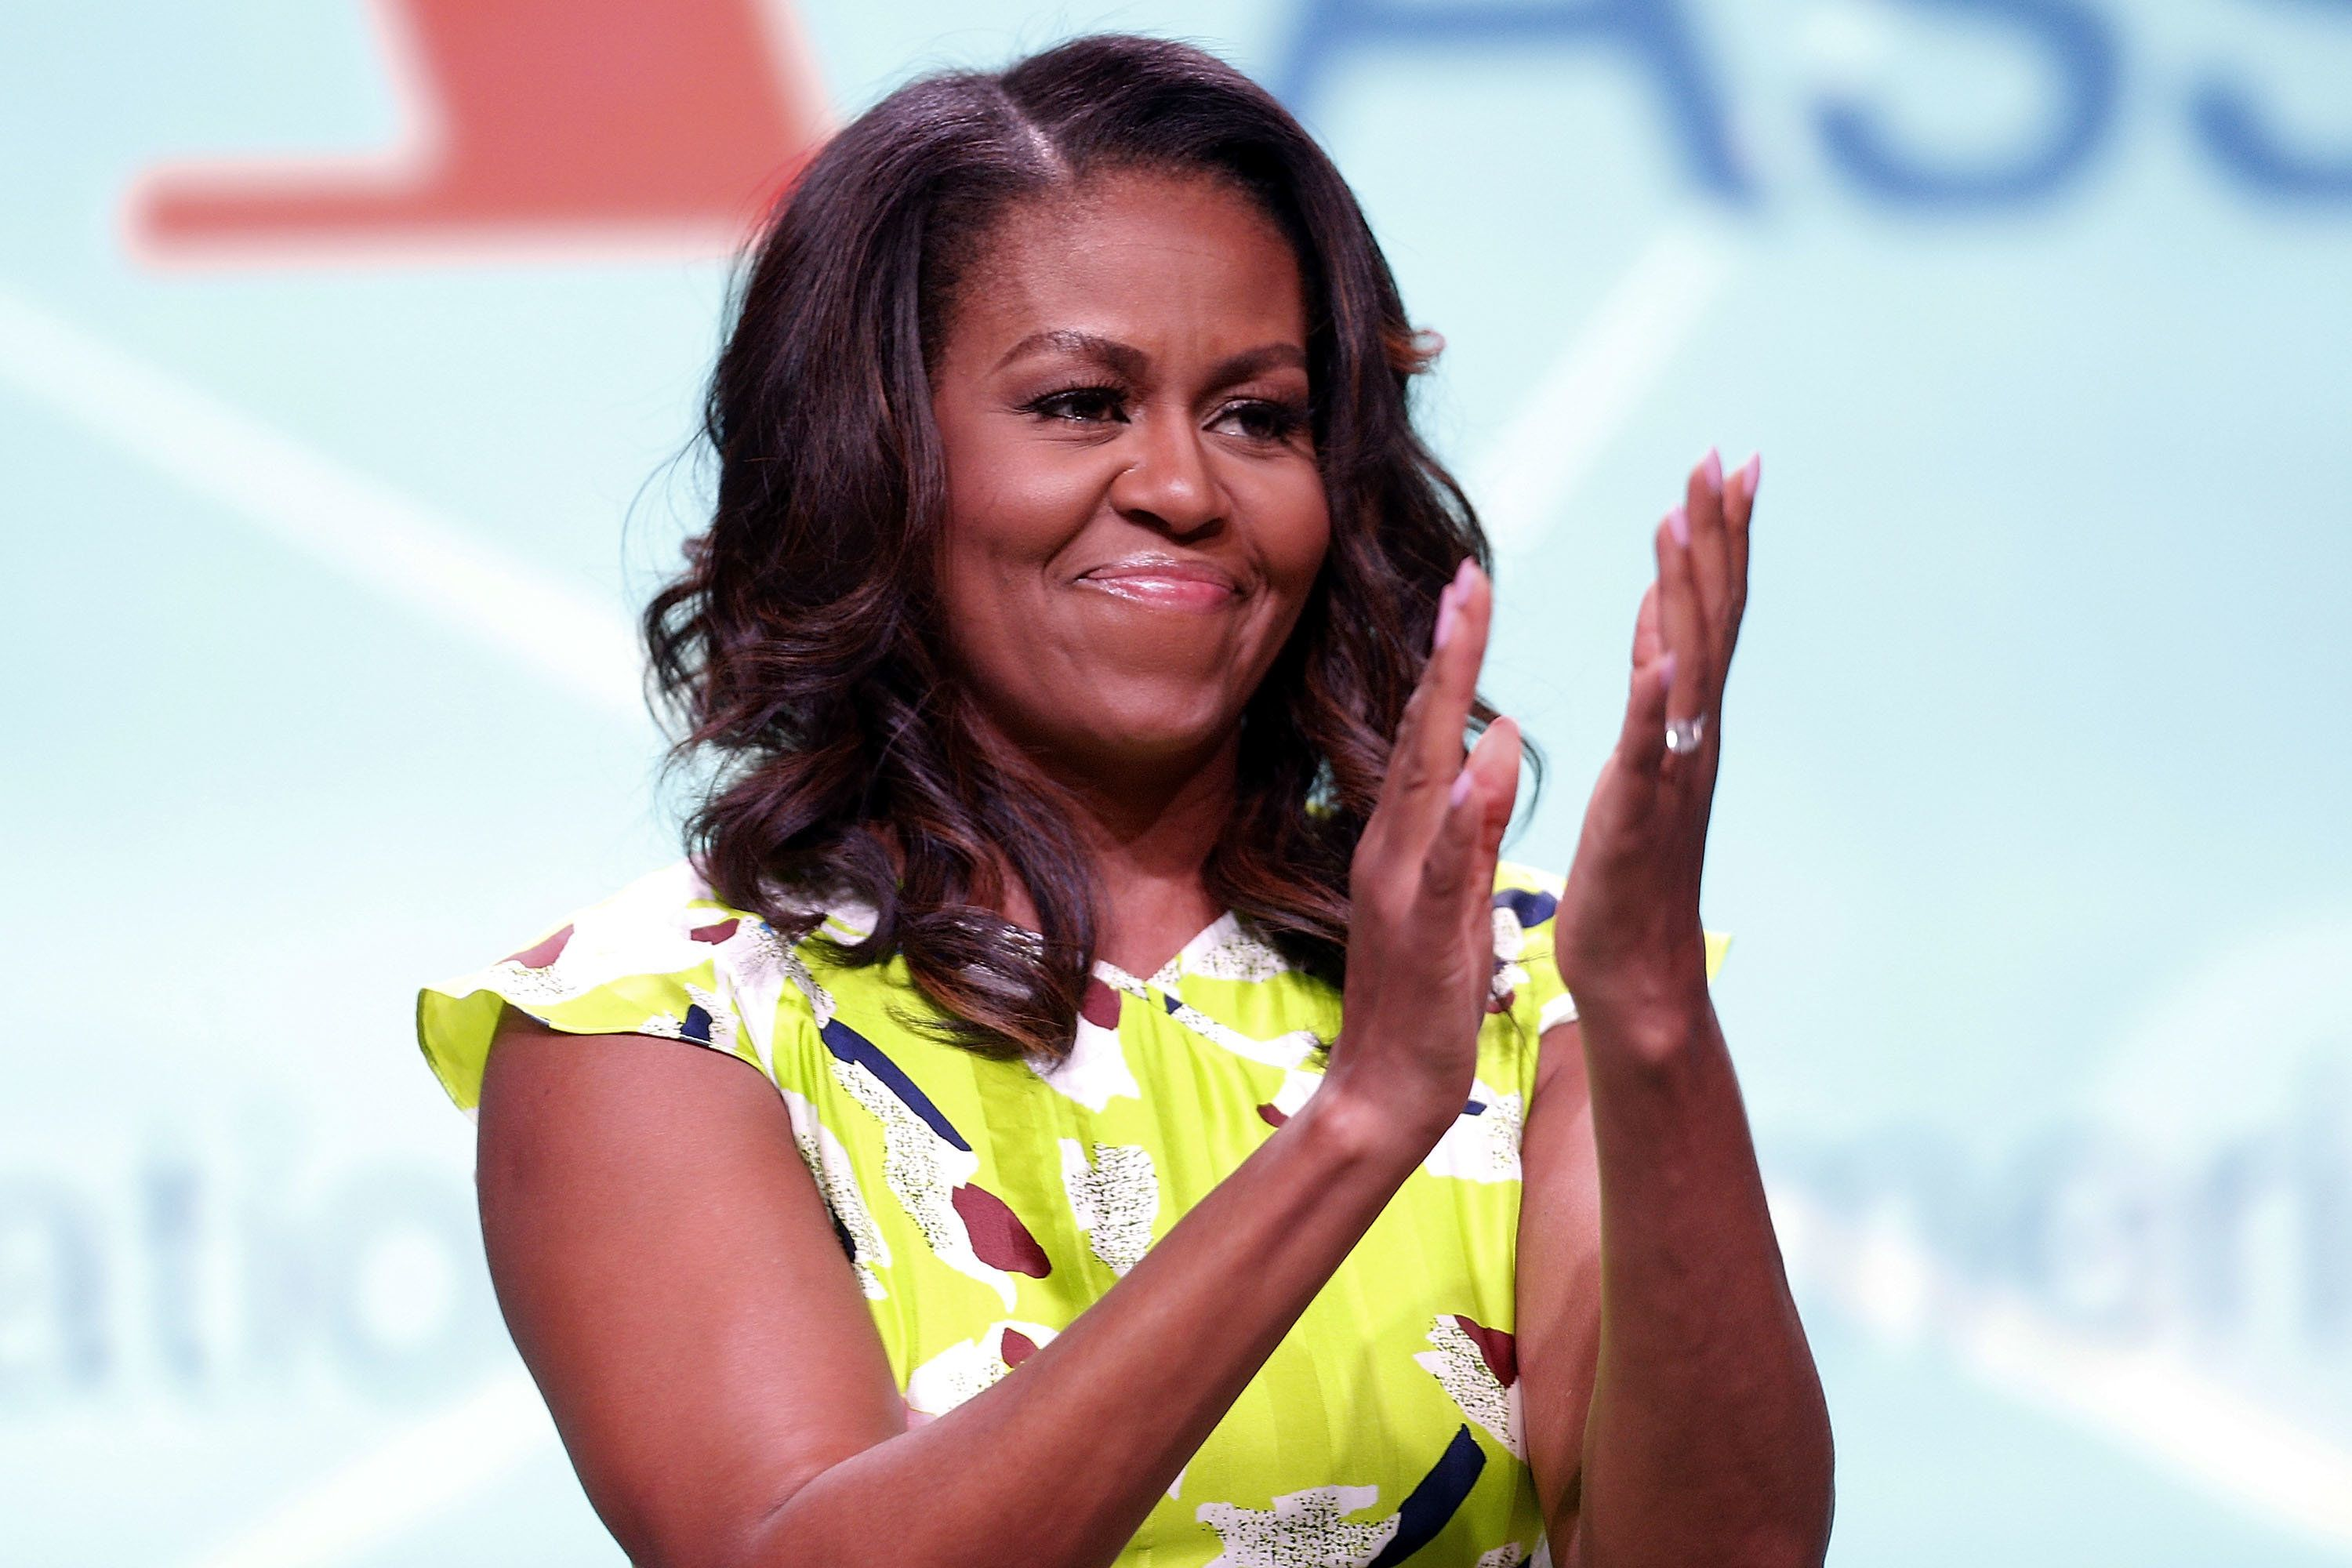 NEW ORLEANS, LA - JUNE 22:  Former U.S. first lady Michelle Obama waves after discussing her forthcoming memoir titled, 'Becoming', during the 2018 American Library Association Annual Conference on June 22, 2018 in New Orleans, Louisiana.  (Photo by Jonathan Bachman/Getty Images)